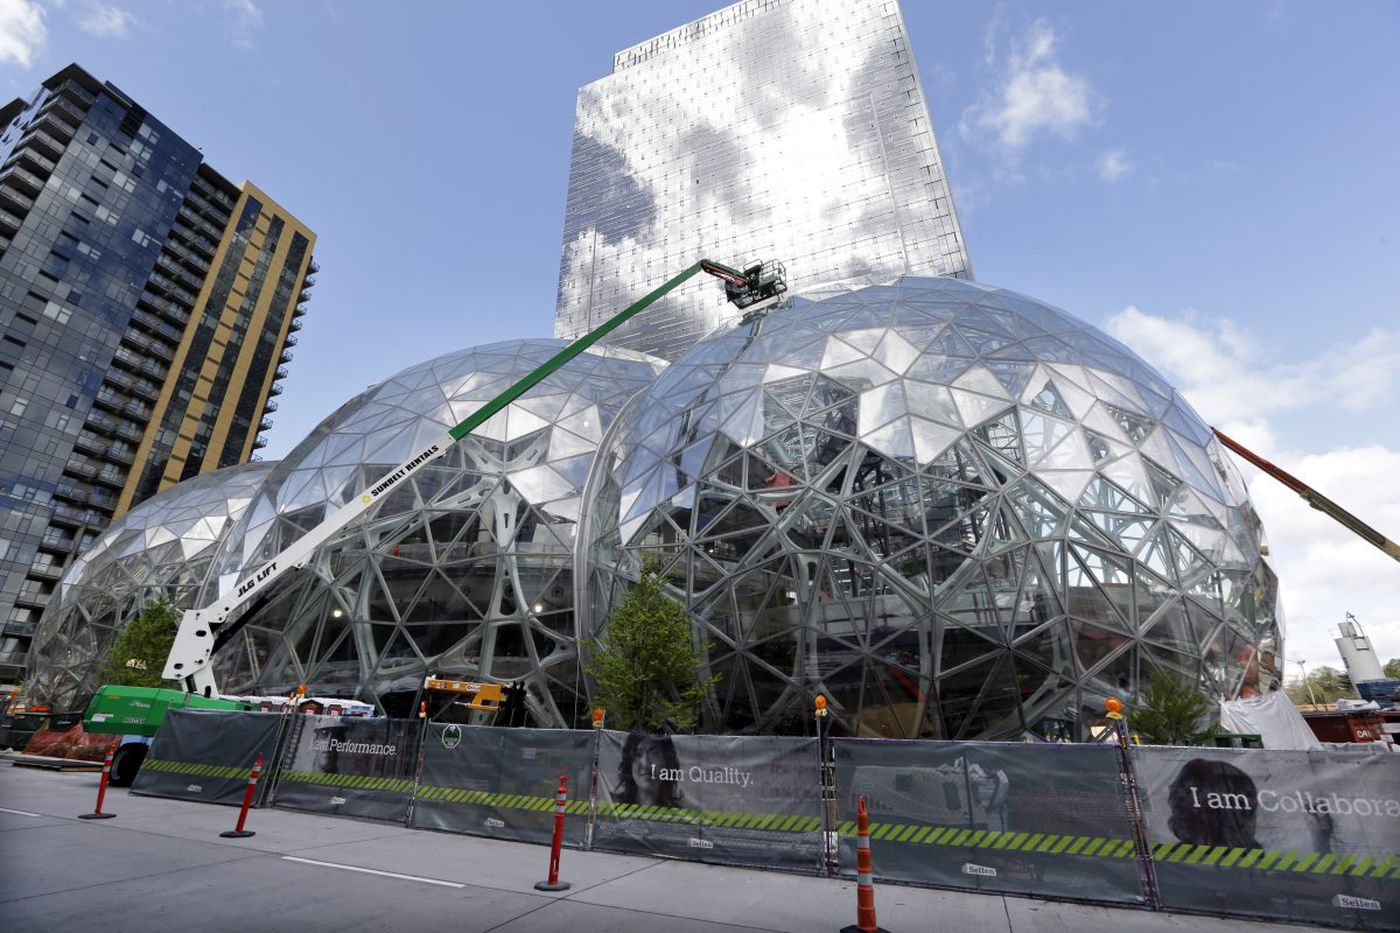 In the bidding war for Amazon, where does Philly stand?